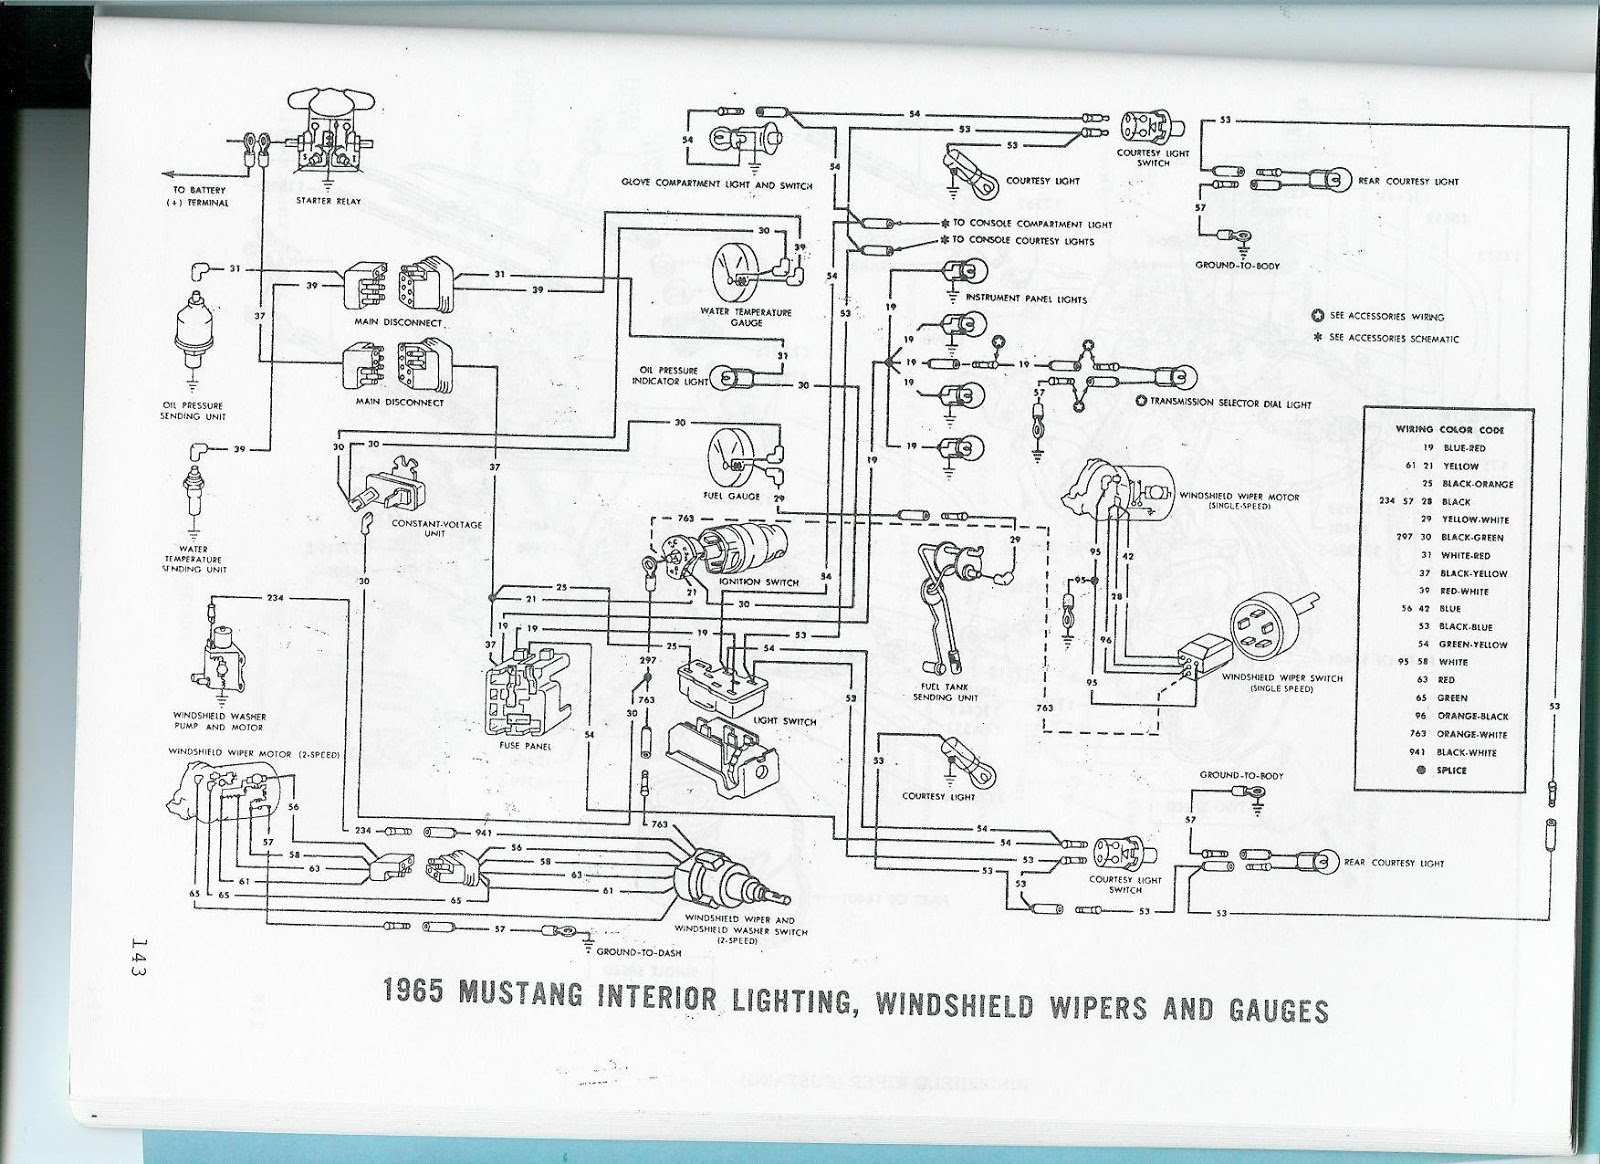 1964 Chevelle Fuse Box Diagram Wiring Library 1965 F100 Opinions About U2022 Toyota